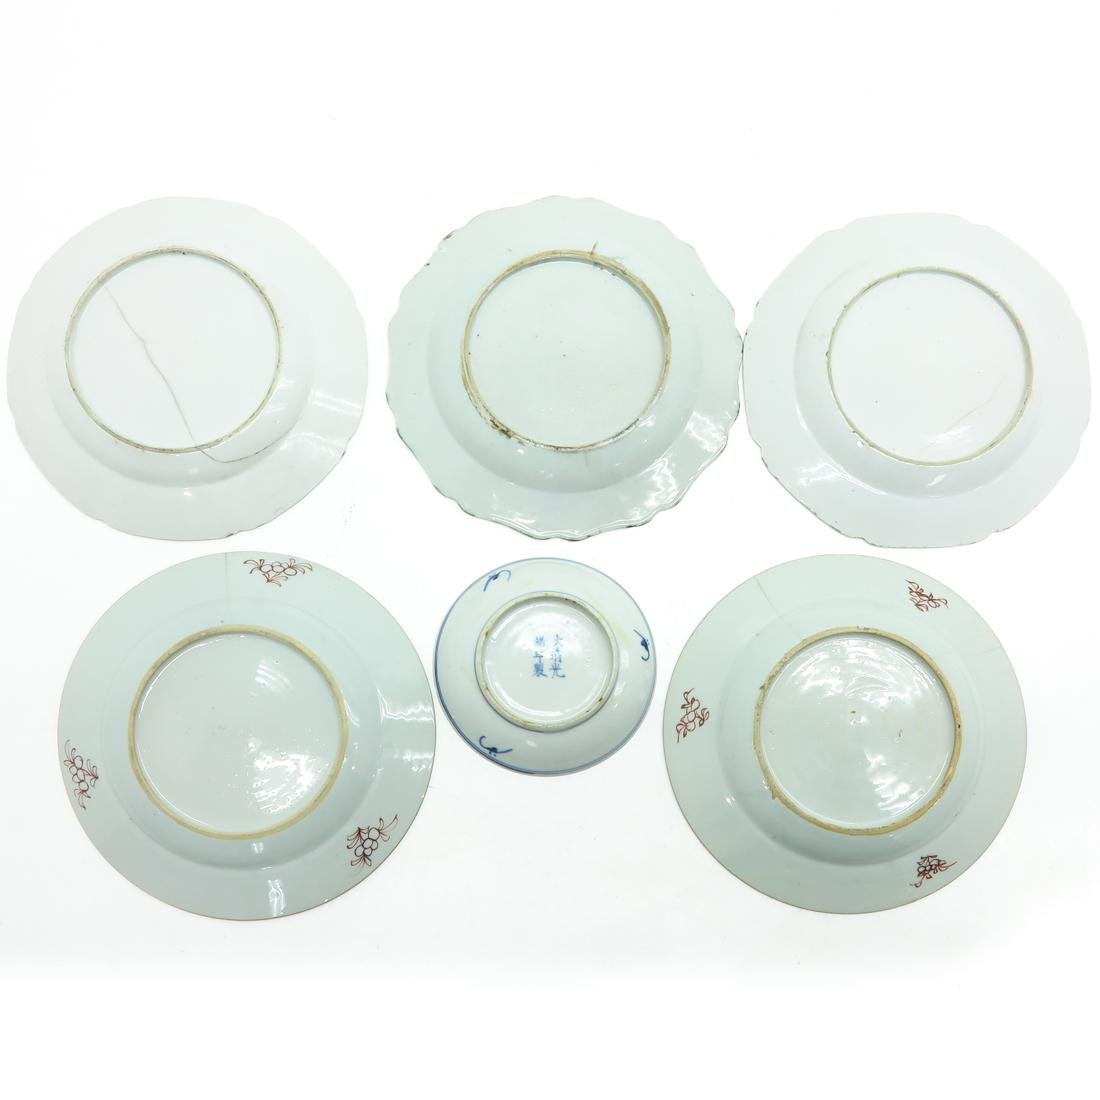 Diverse Lot of 6 Plates - 2